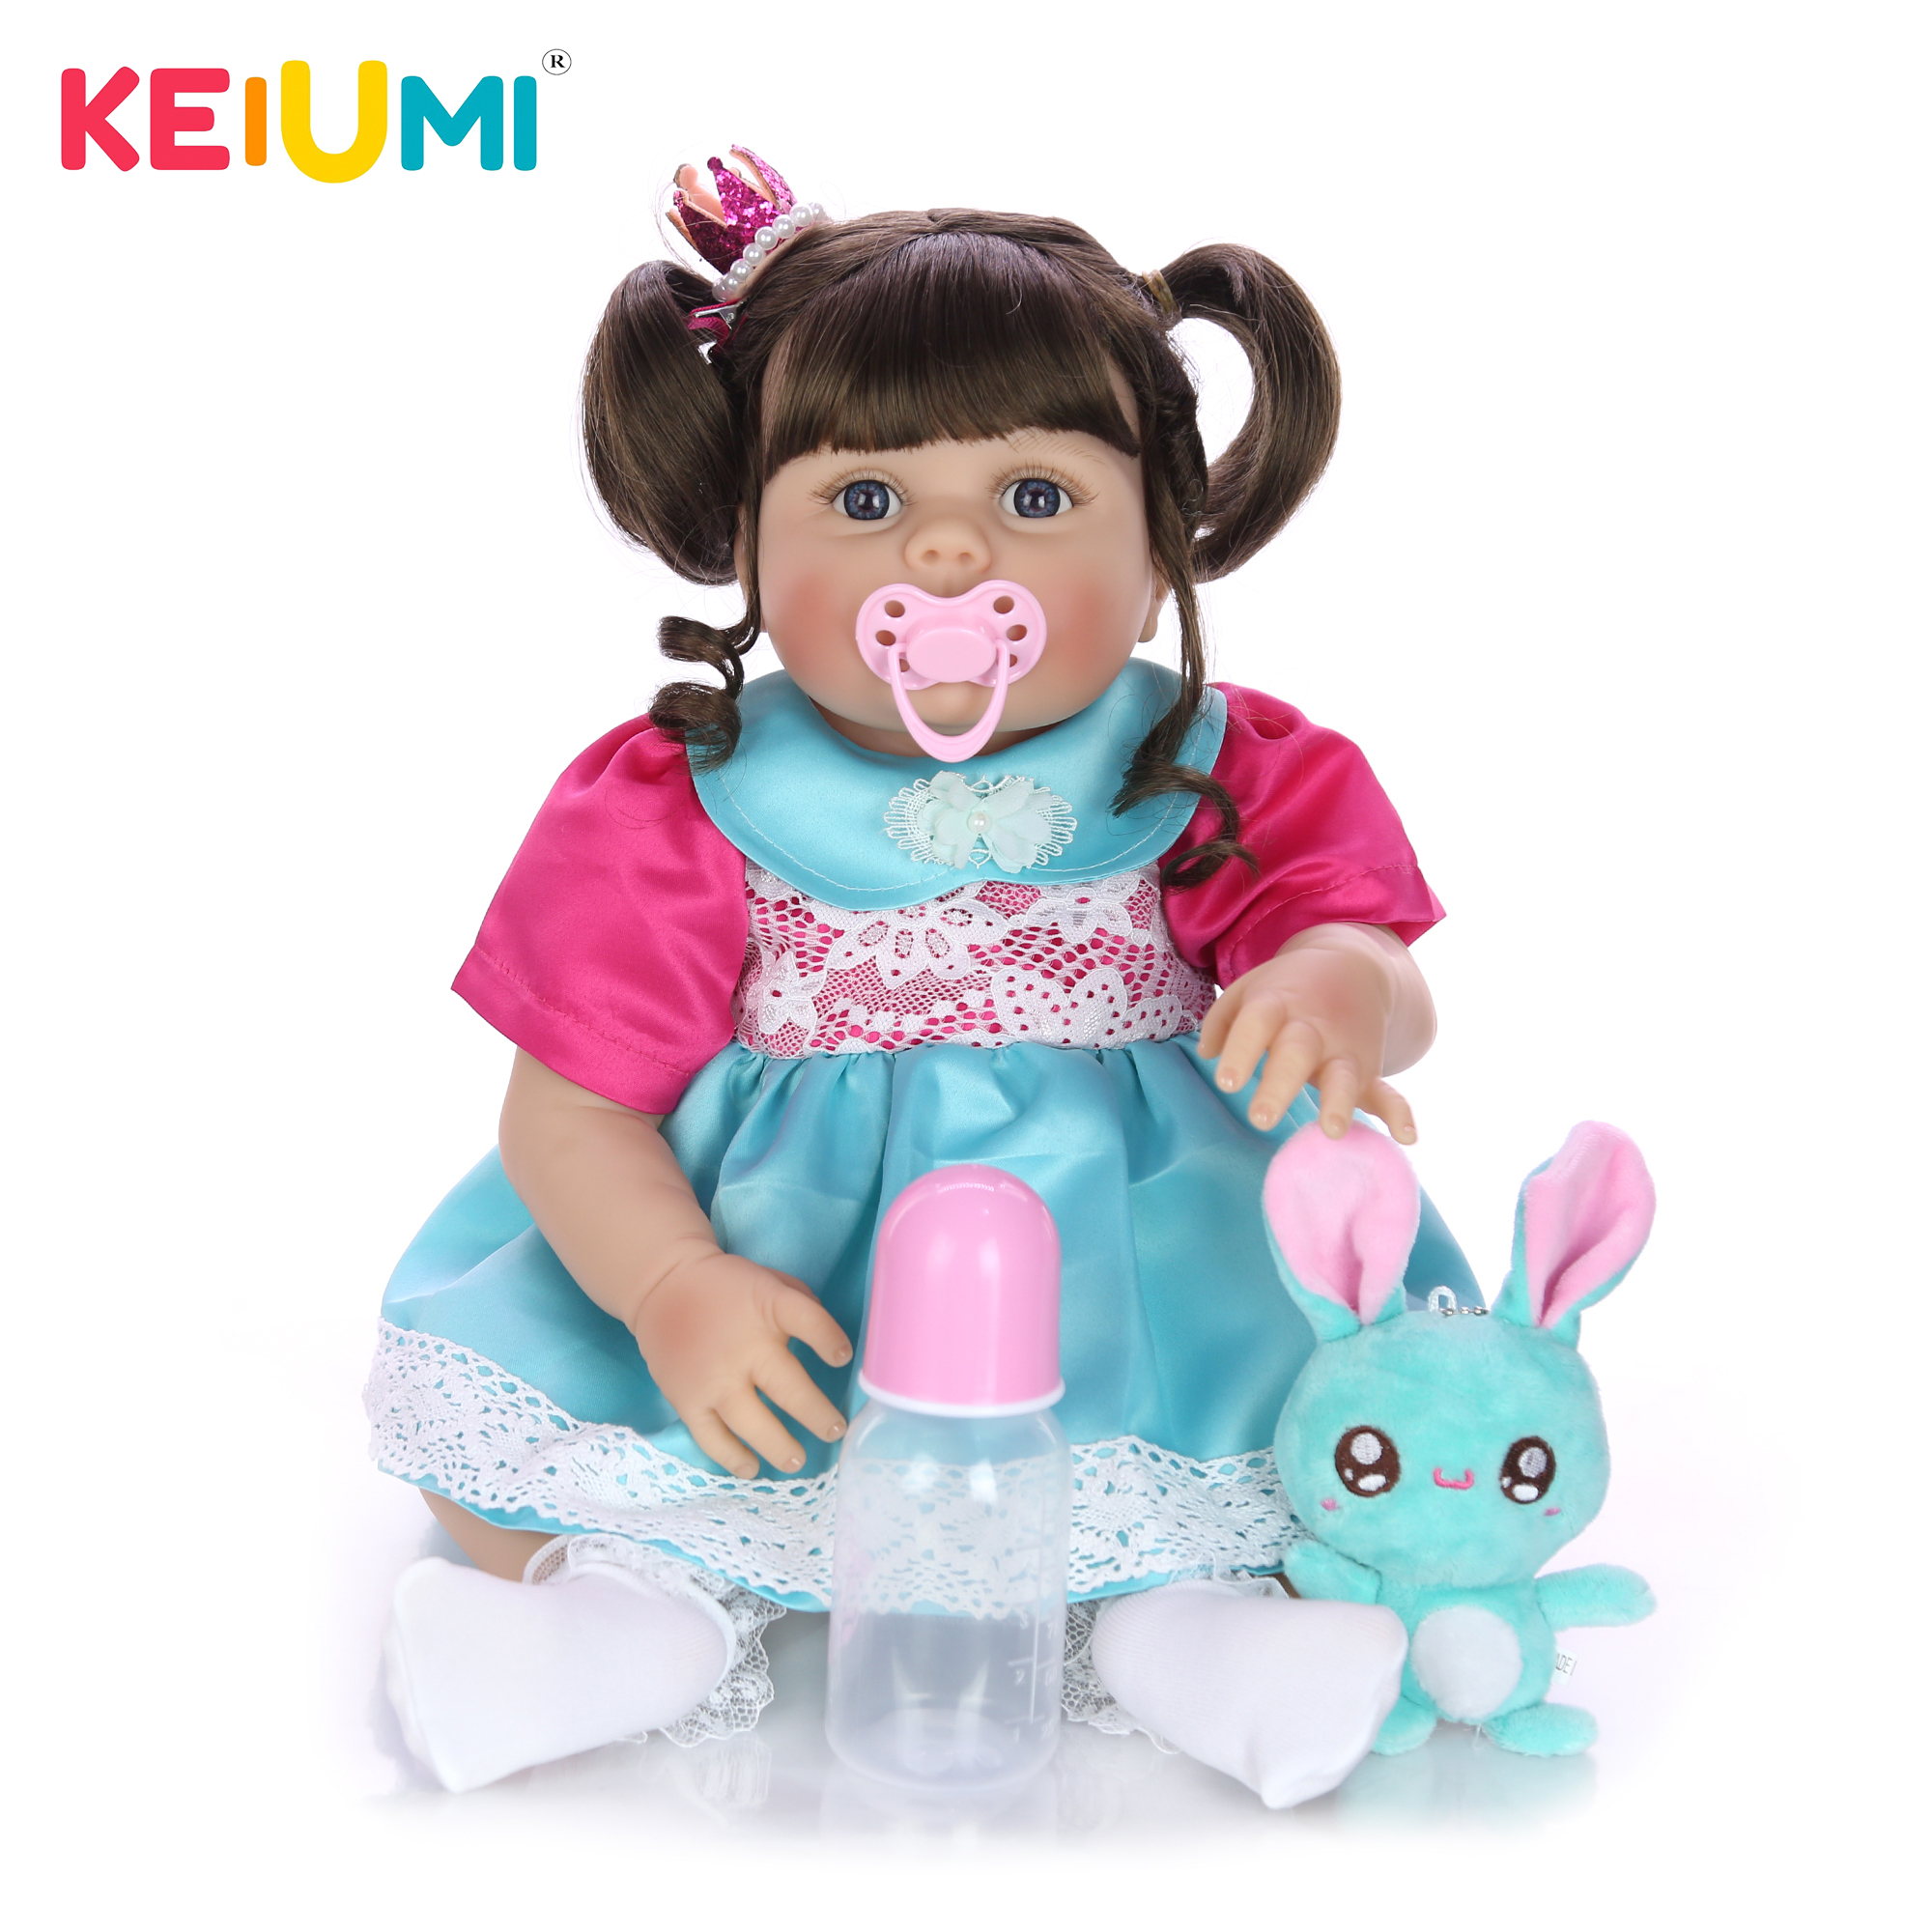 KEIUMI New Arrival 23 Fantasy Reborn Dolls For Girls All Silicone Boneca Vinyl Newborn Toddler Bebe